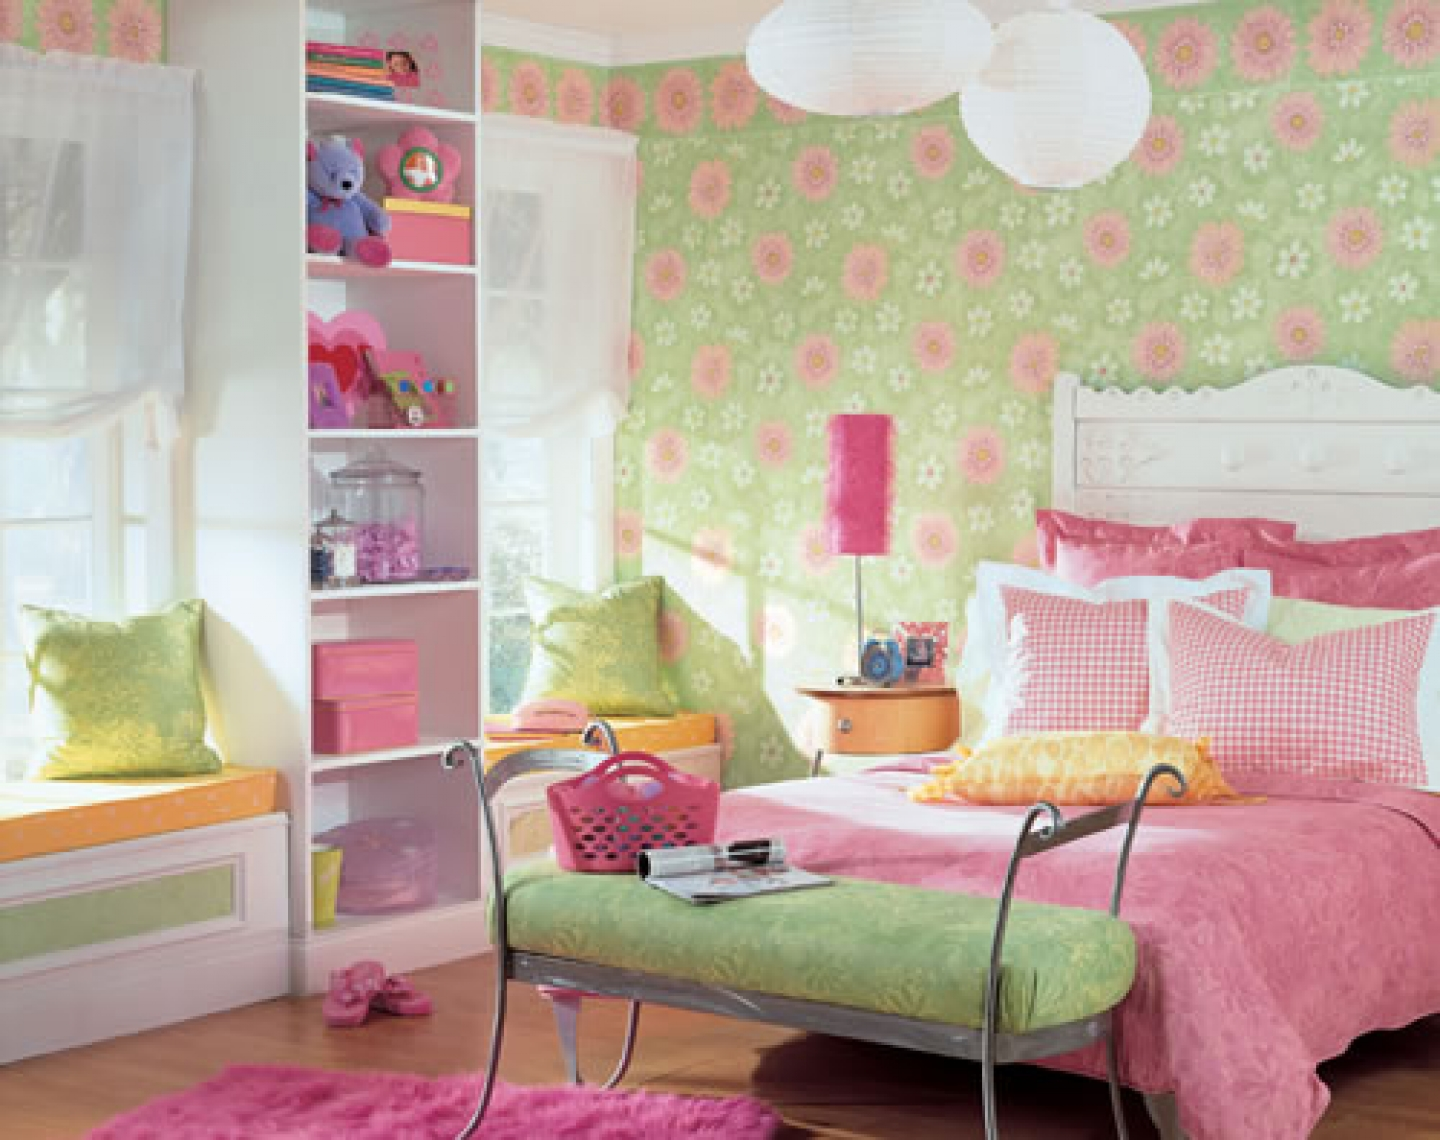 wall bedroom wallpaper bedroom wallpaper girls bedroom wallpaper ideas 1440x1140